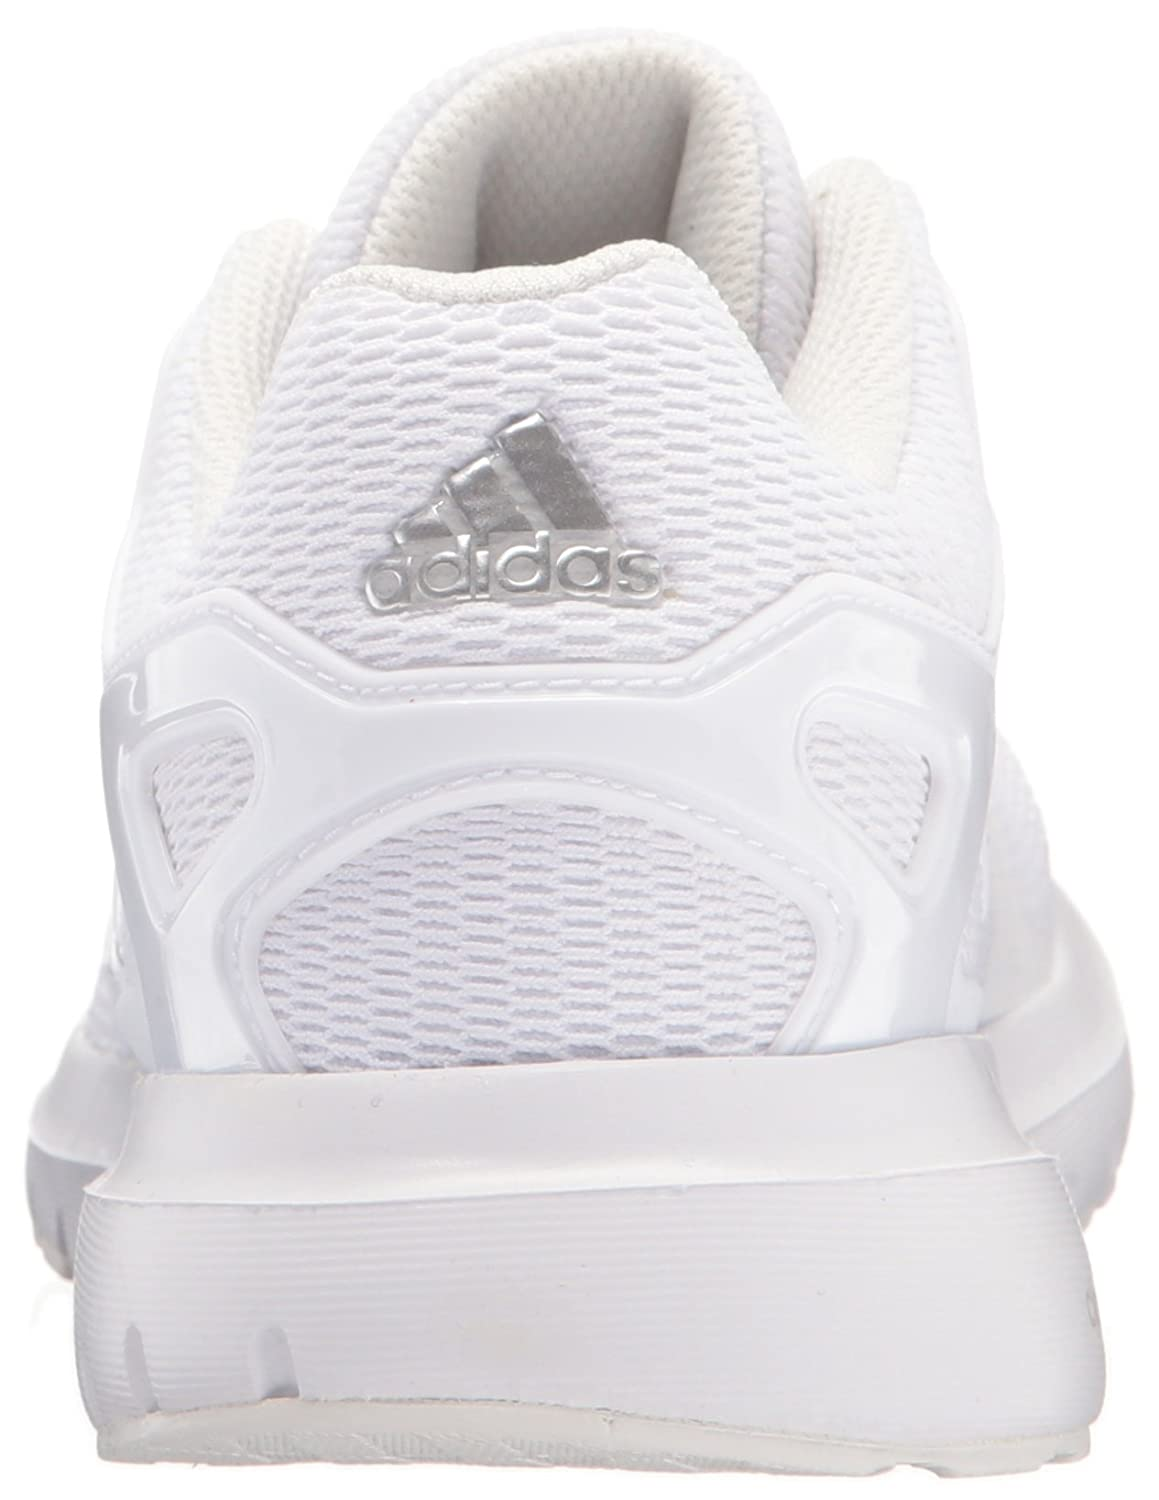 adidas 9 Women's Energy Cloud V Running Shoe B01LP5JQDU 9 adidas B(M) US|White/White/Crystal White S 678618